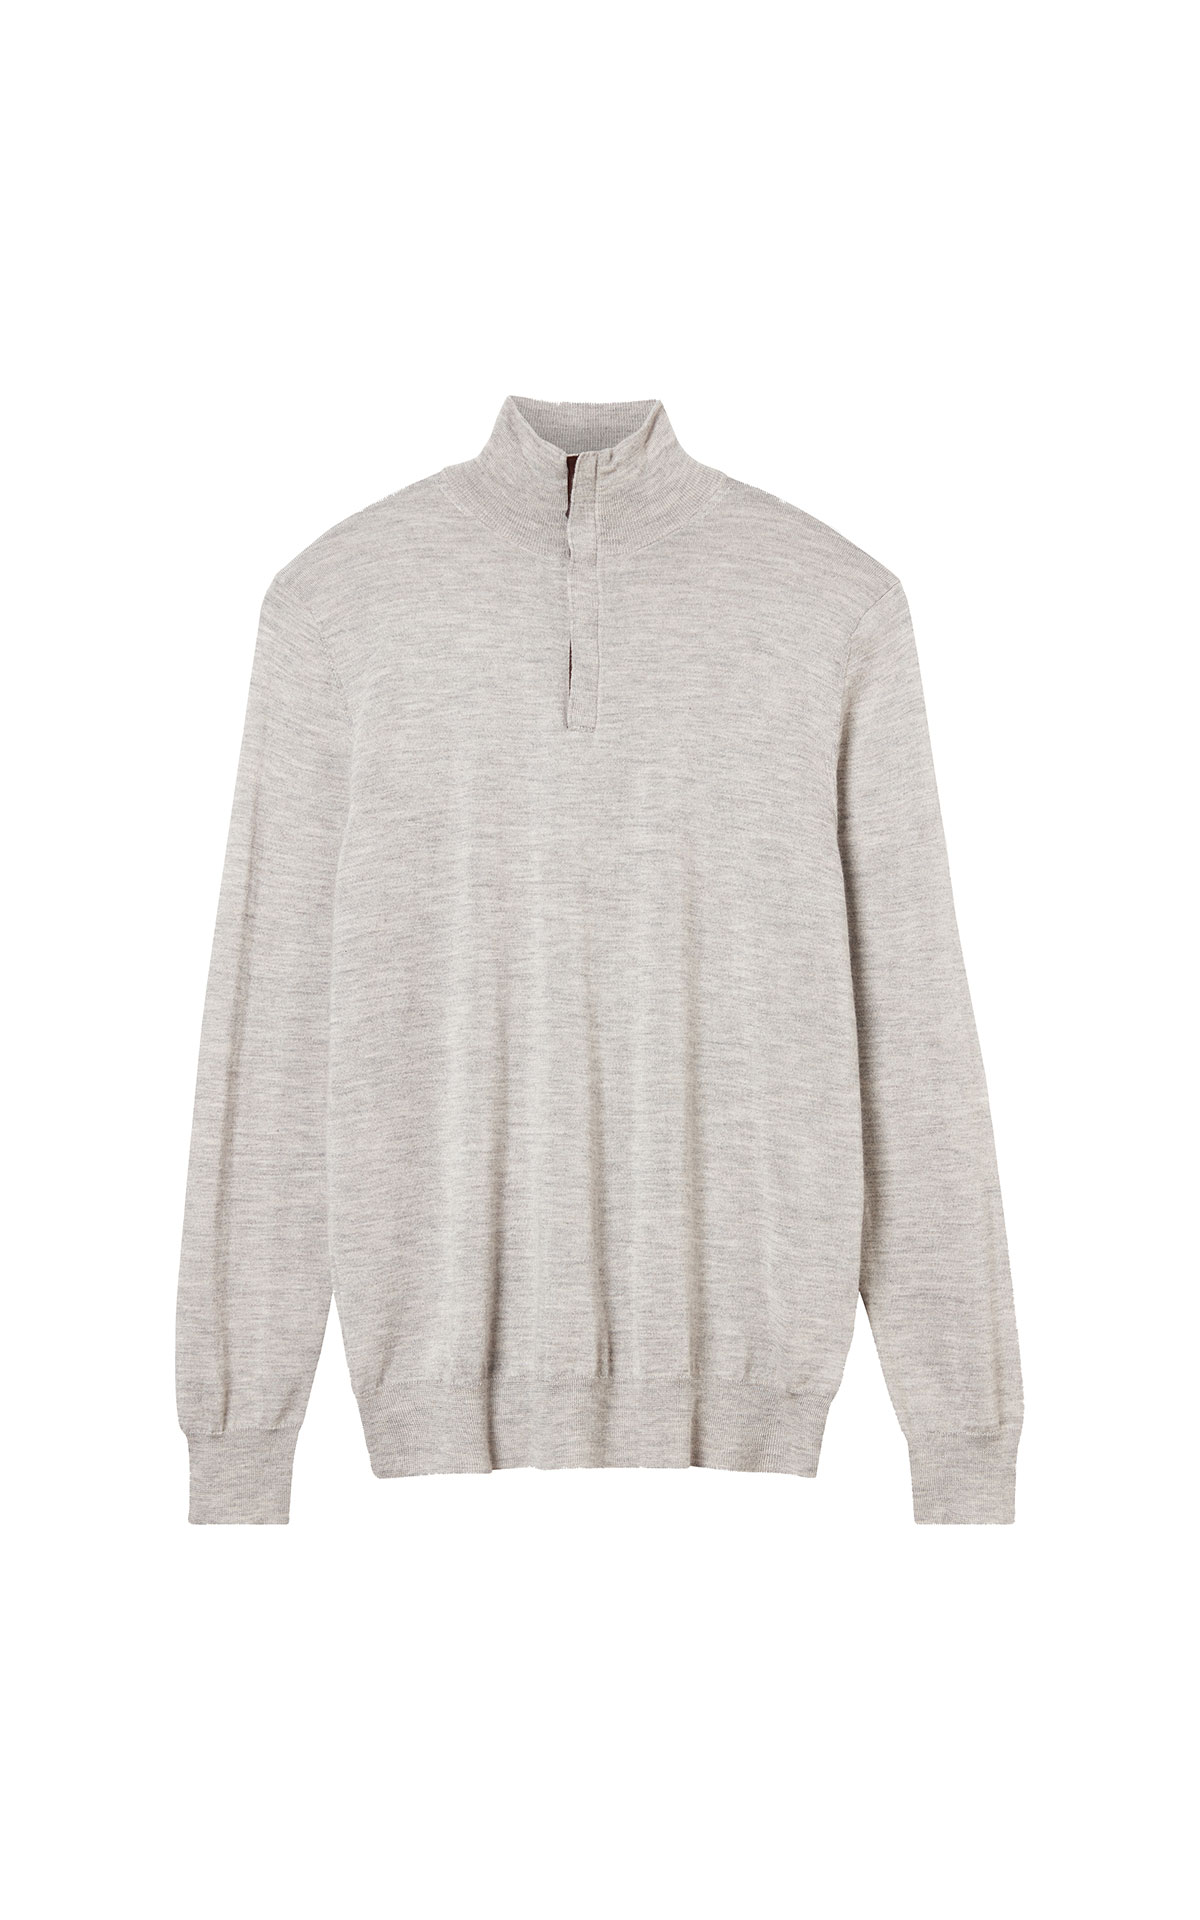 N. Peal Regent fg 1/2 zip sweater from Bicester Village